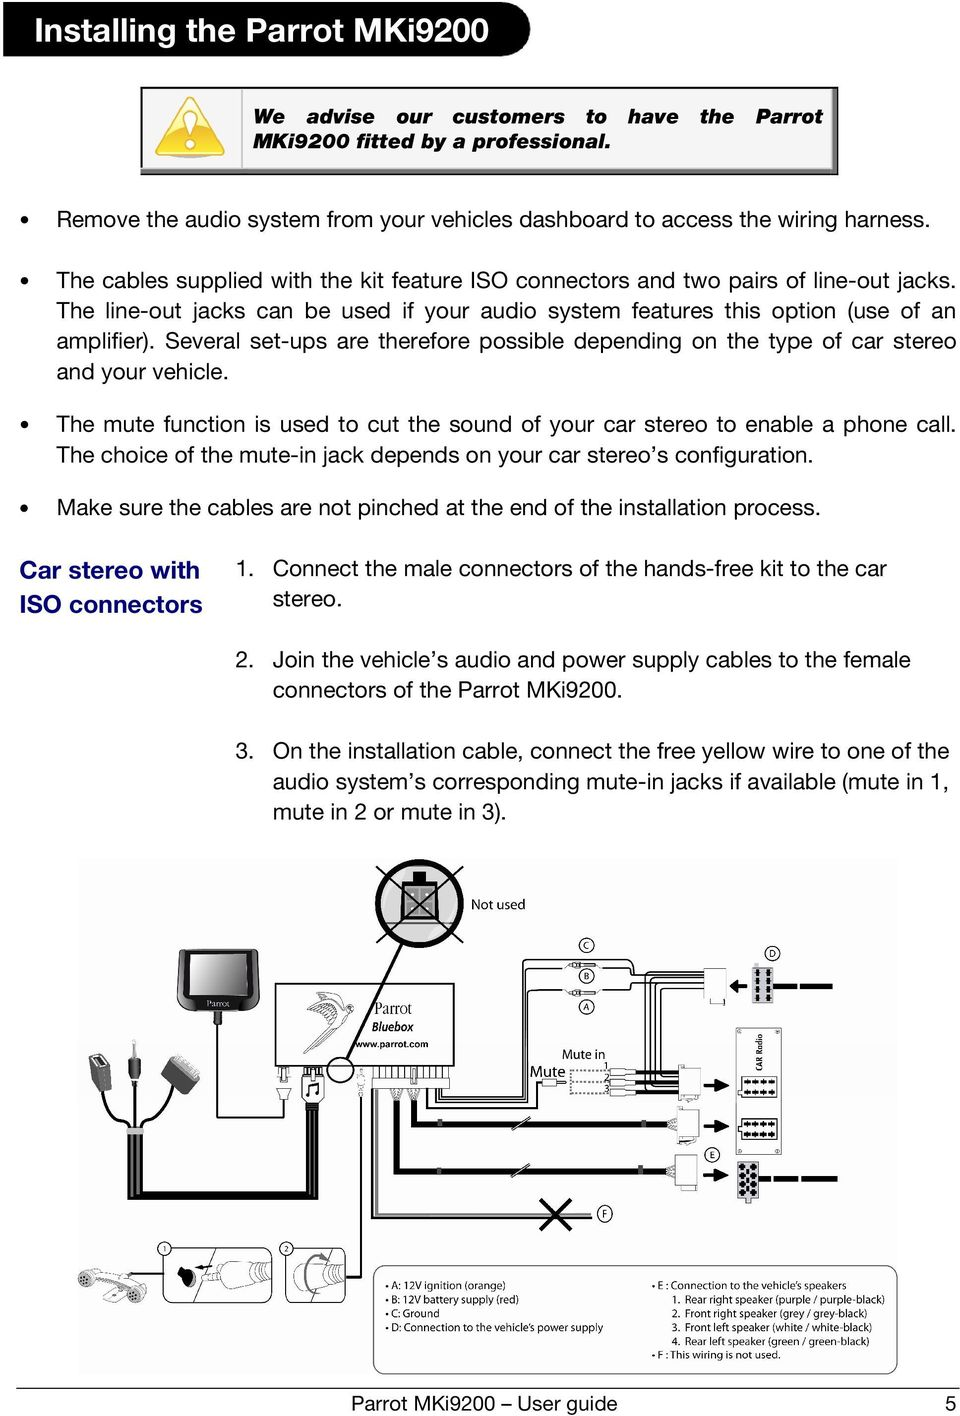 hight resolution of parrot mki9200 user guide 5 several set ups are therefore possible depending on the